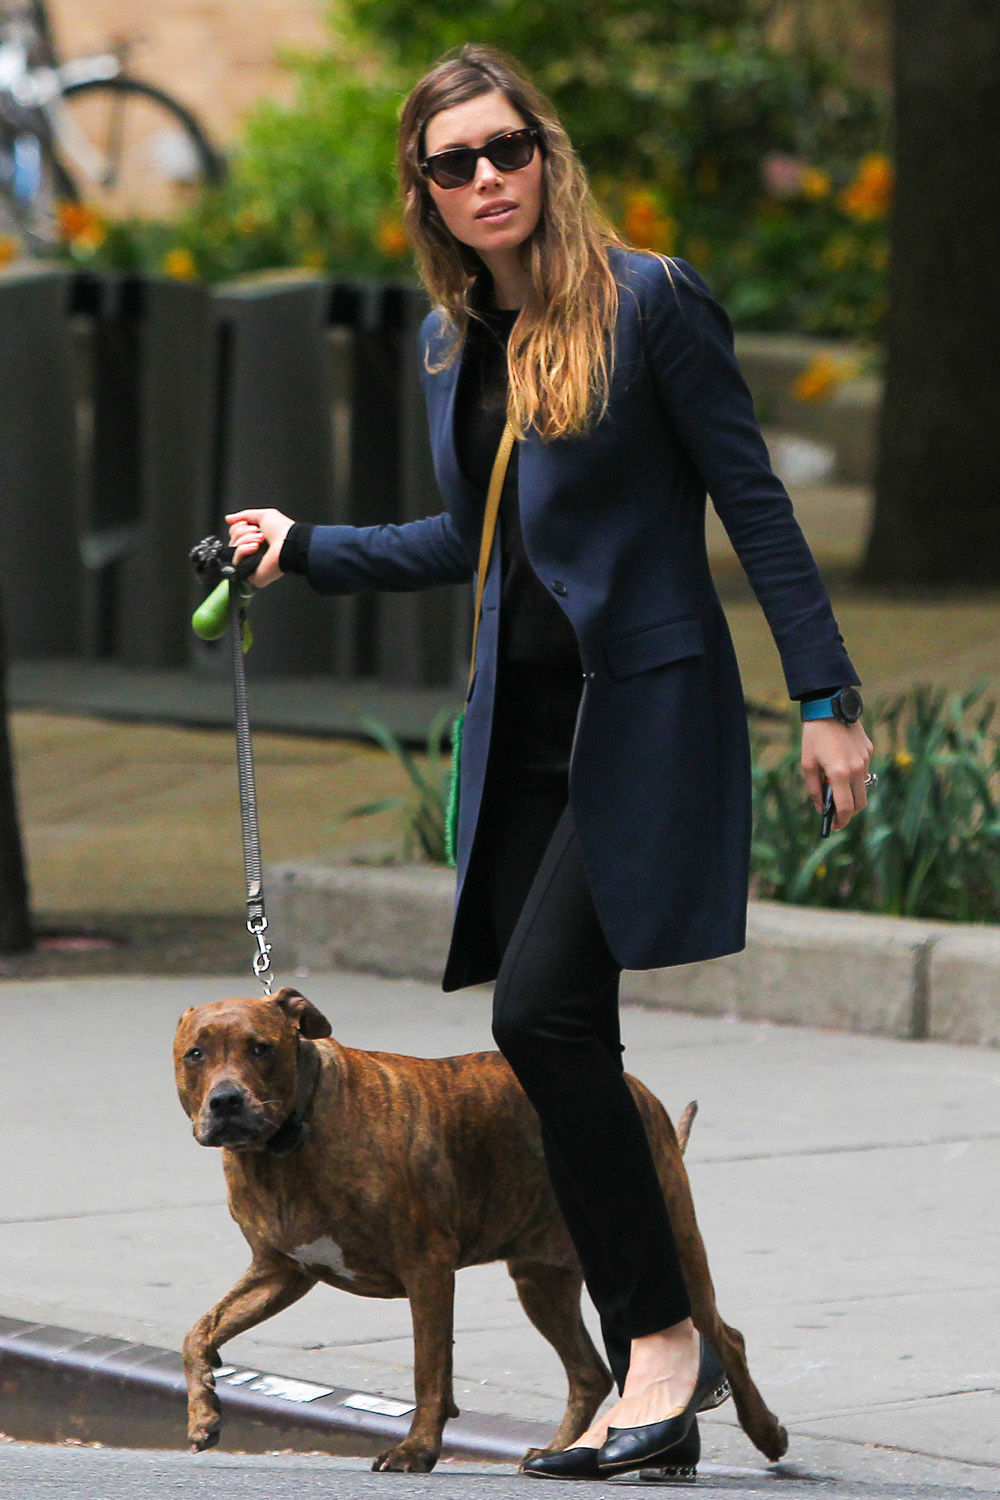 teacup-tales:  Jessica Biel in NYC